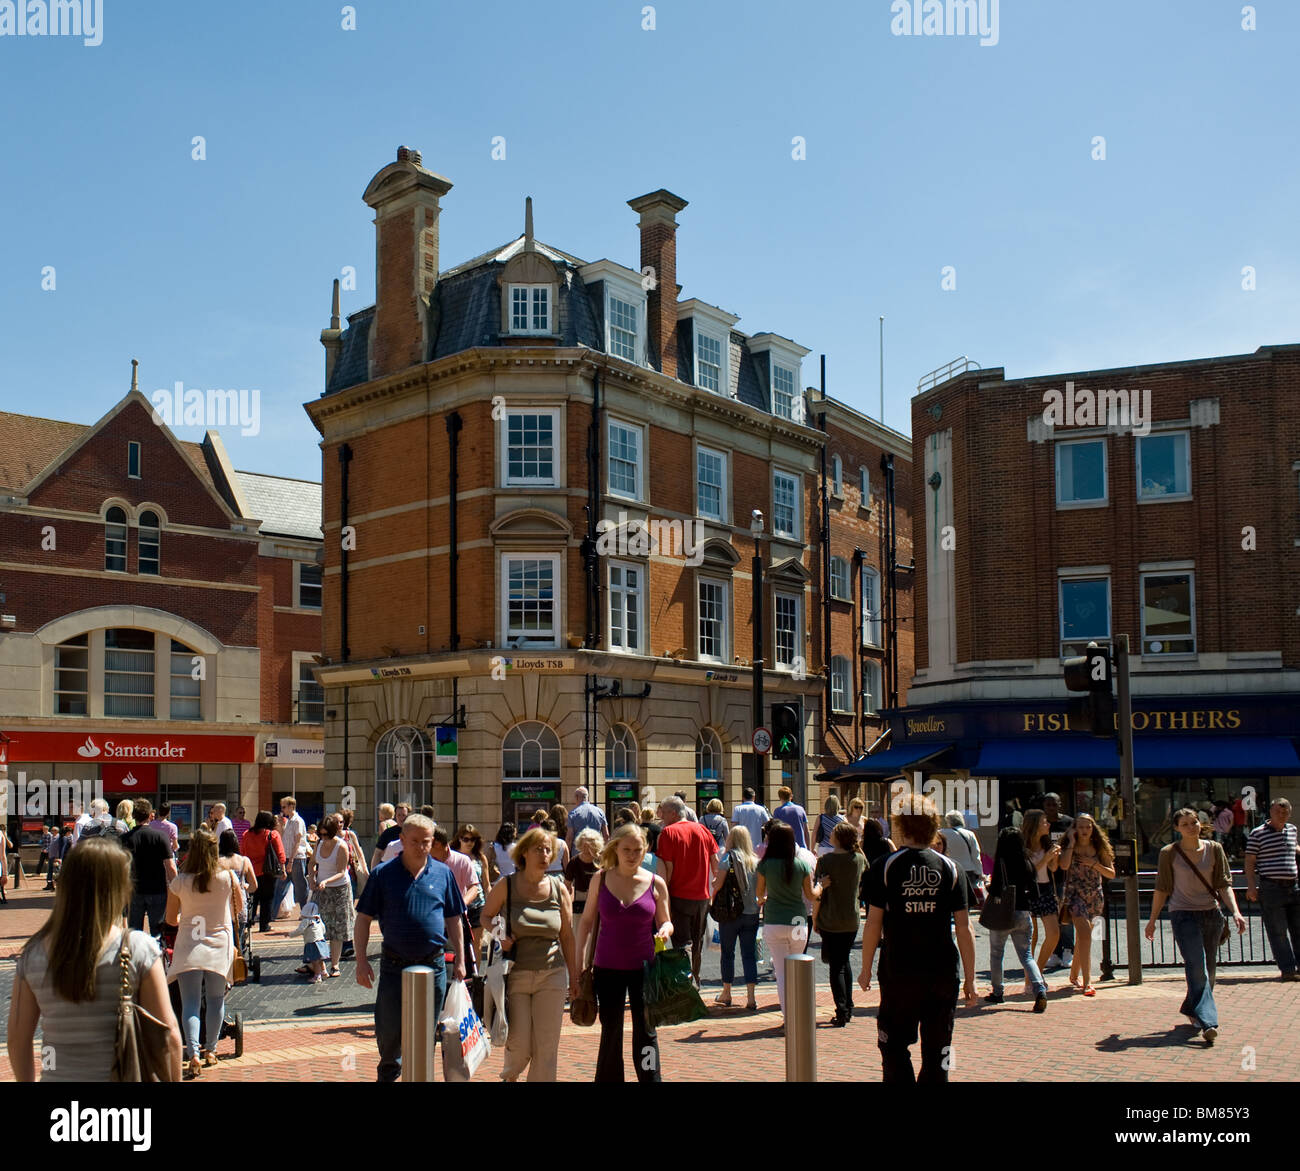 People shopping in Chelmsford Town centre in Essex. - Stock Image